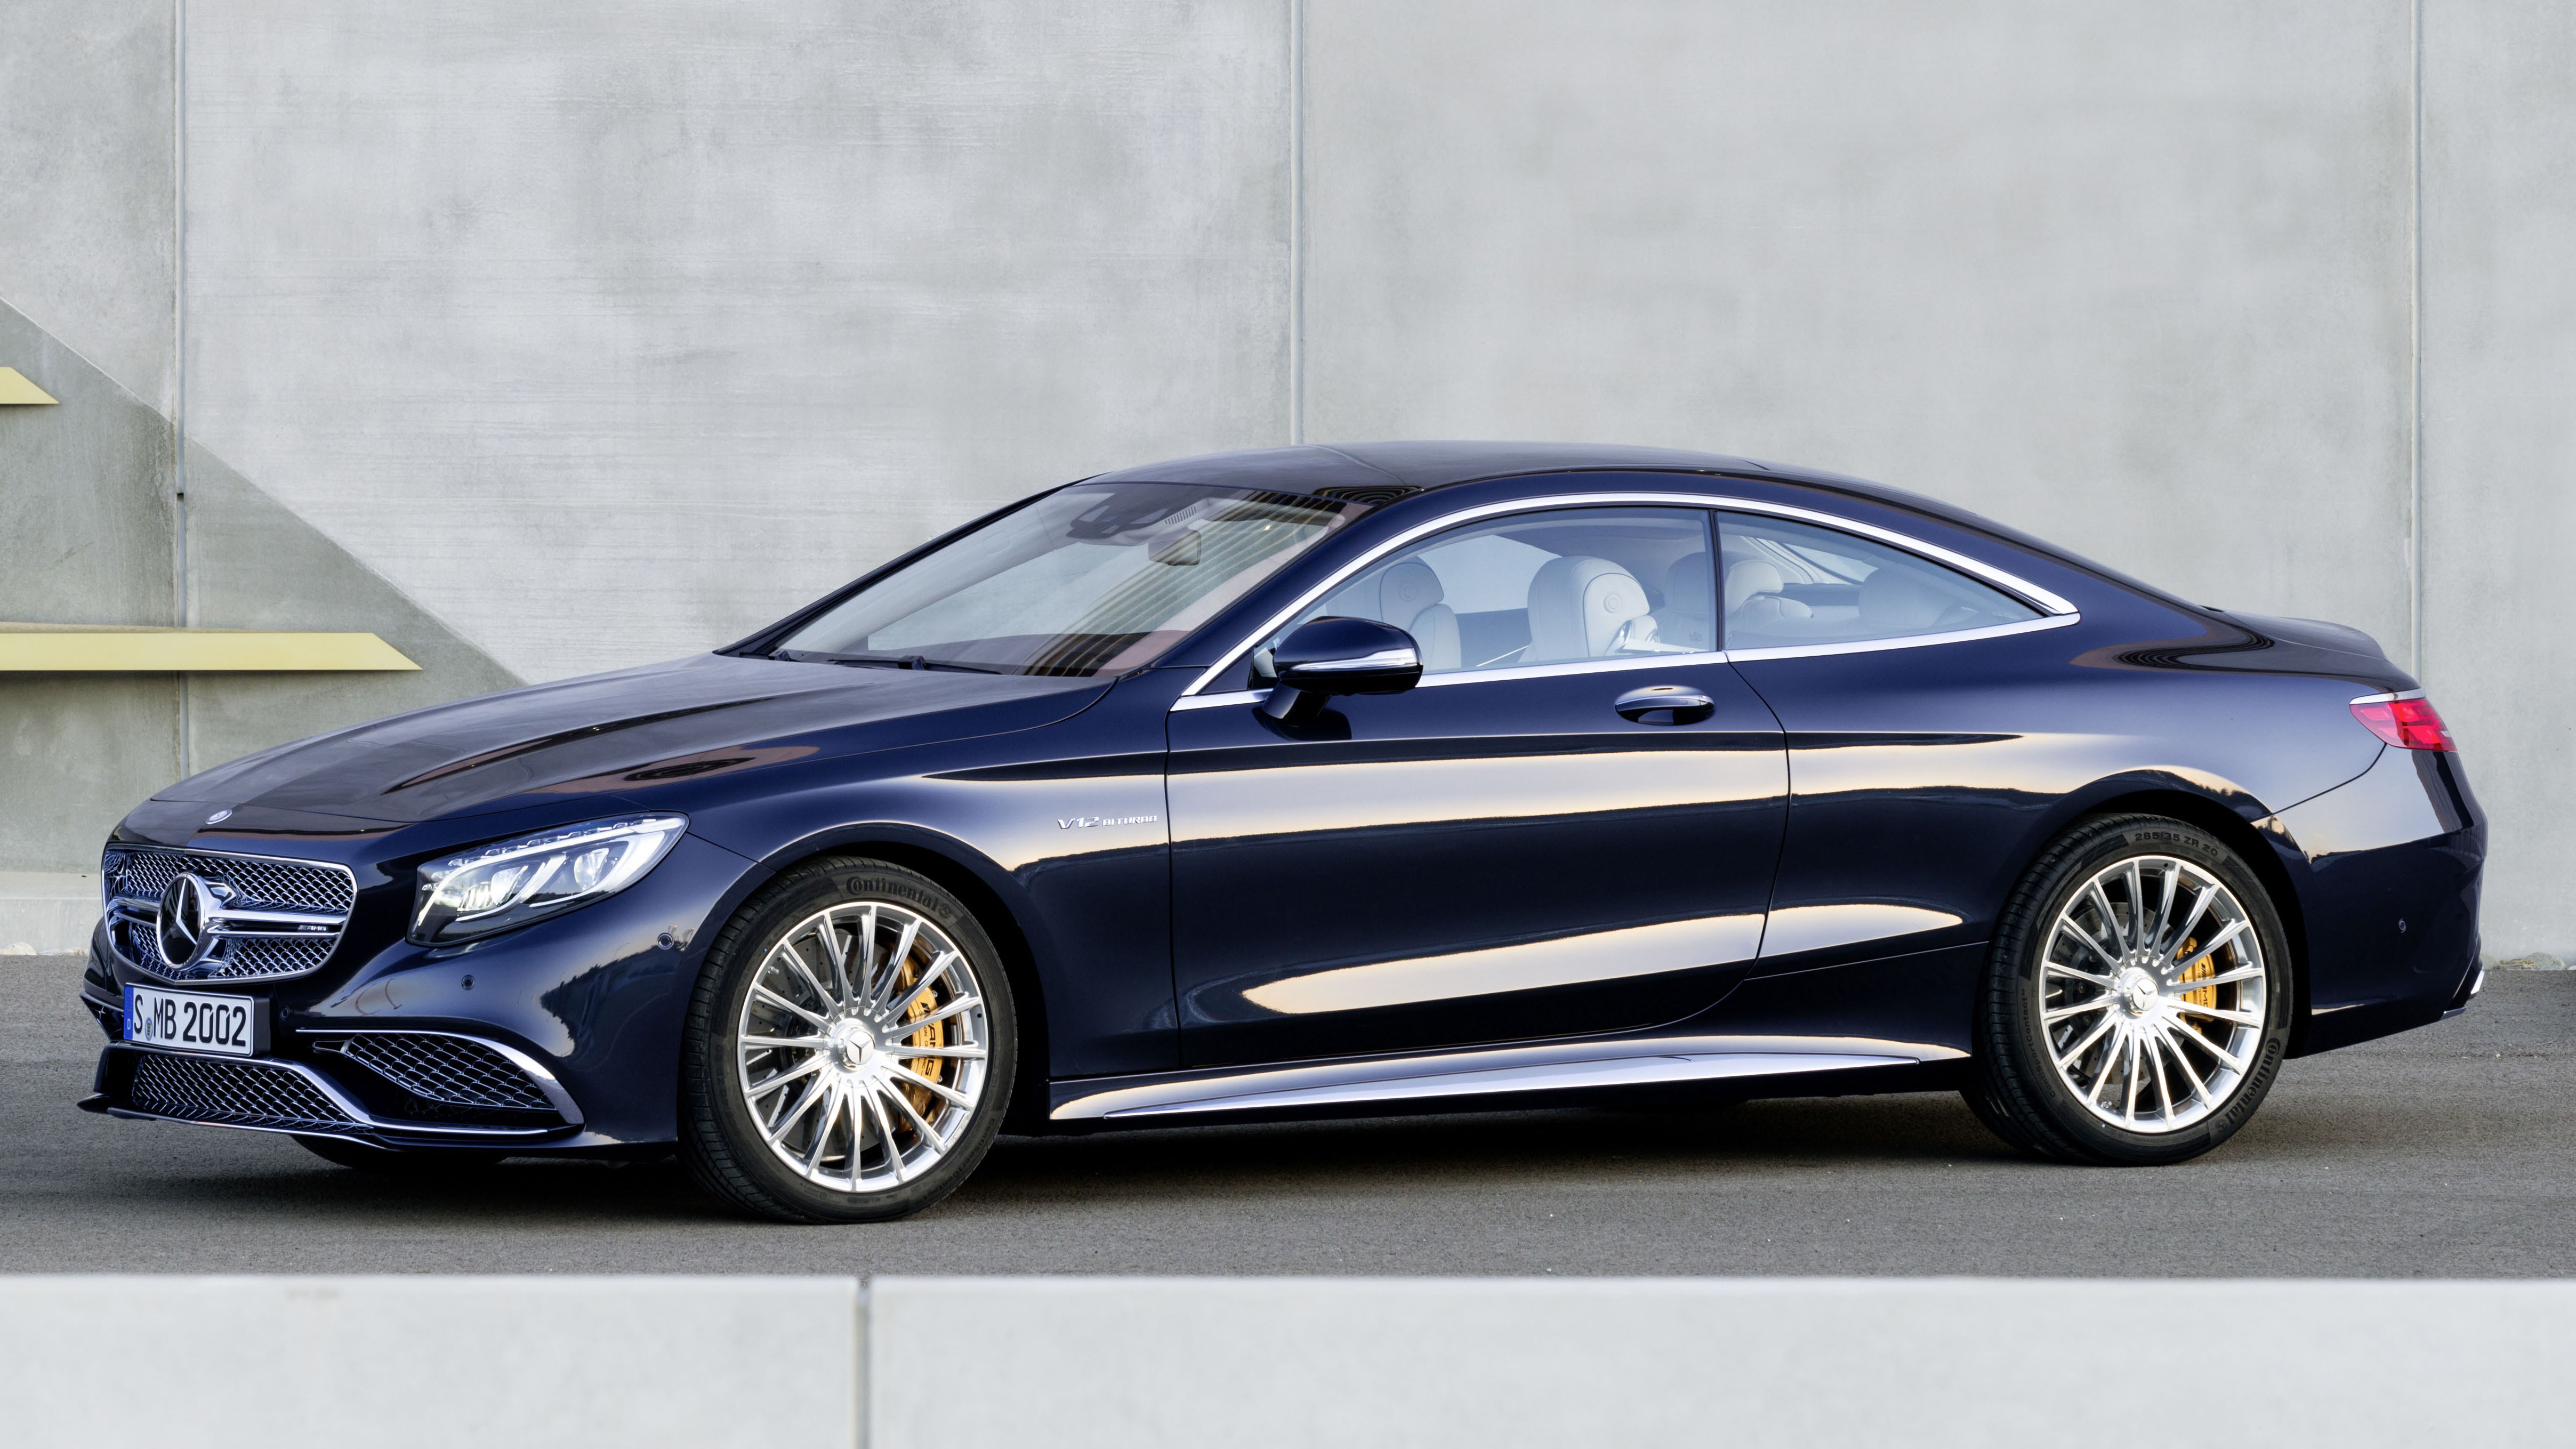 Mercedes Benz S 65 Amg Coupe Storms The Gates With 630 Ps